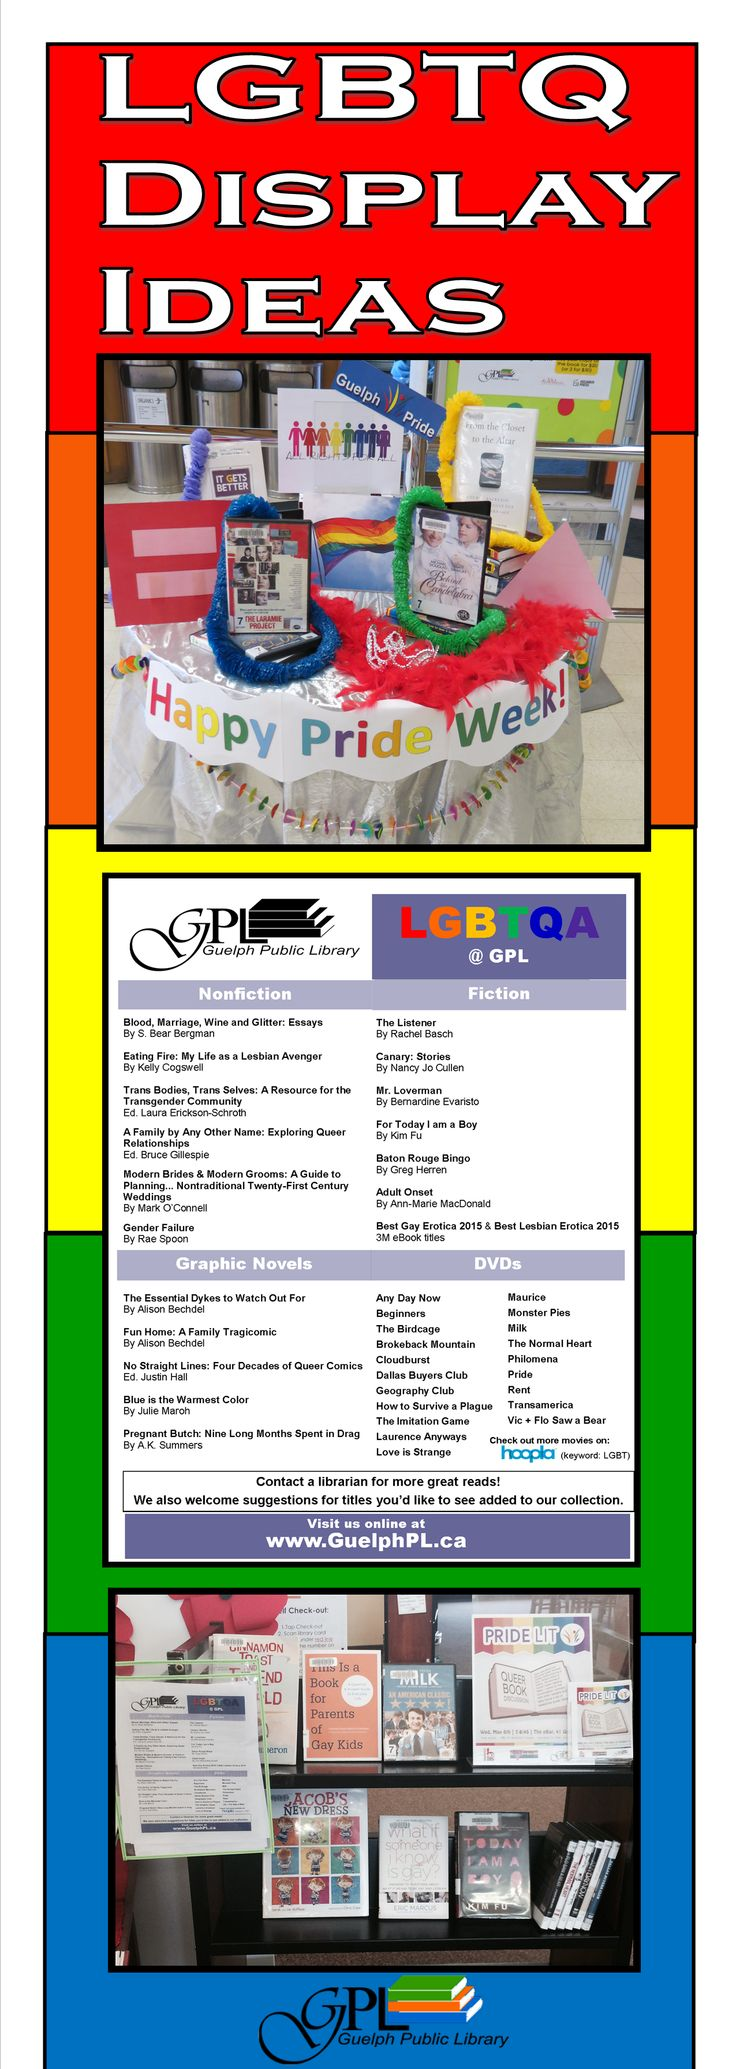 LGBTQ Library Display Ideas! Displays and a Book List to show your Pride! #SomethingForEveryone